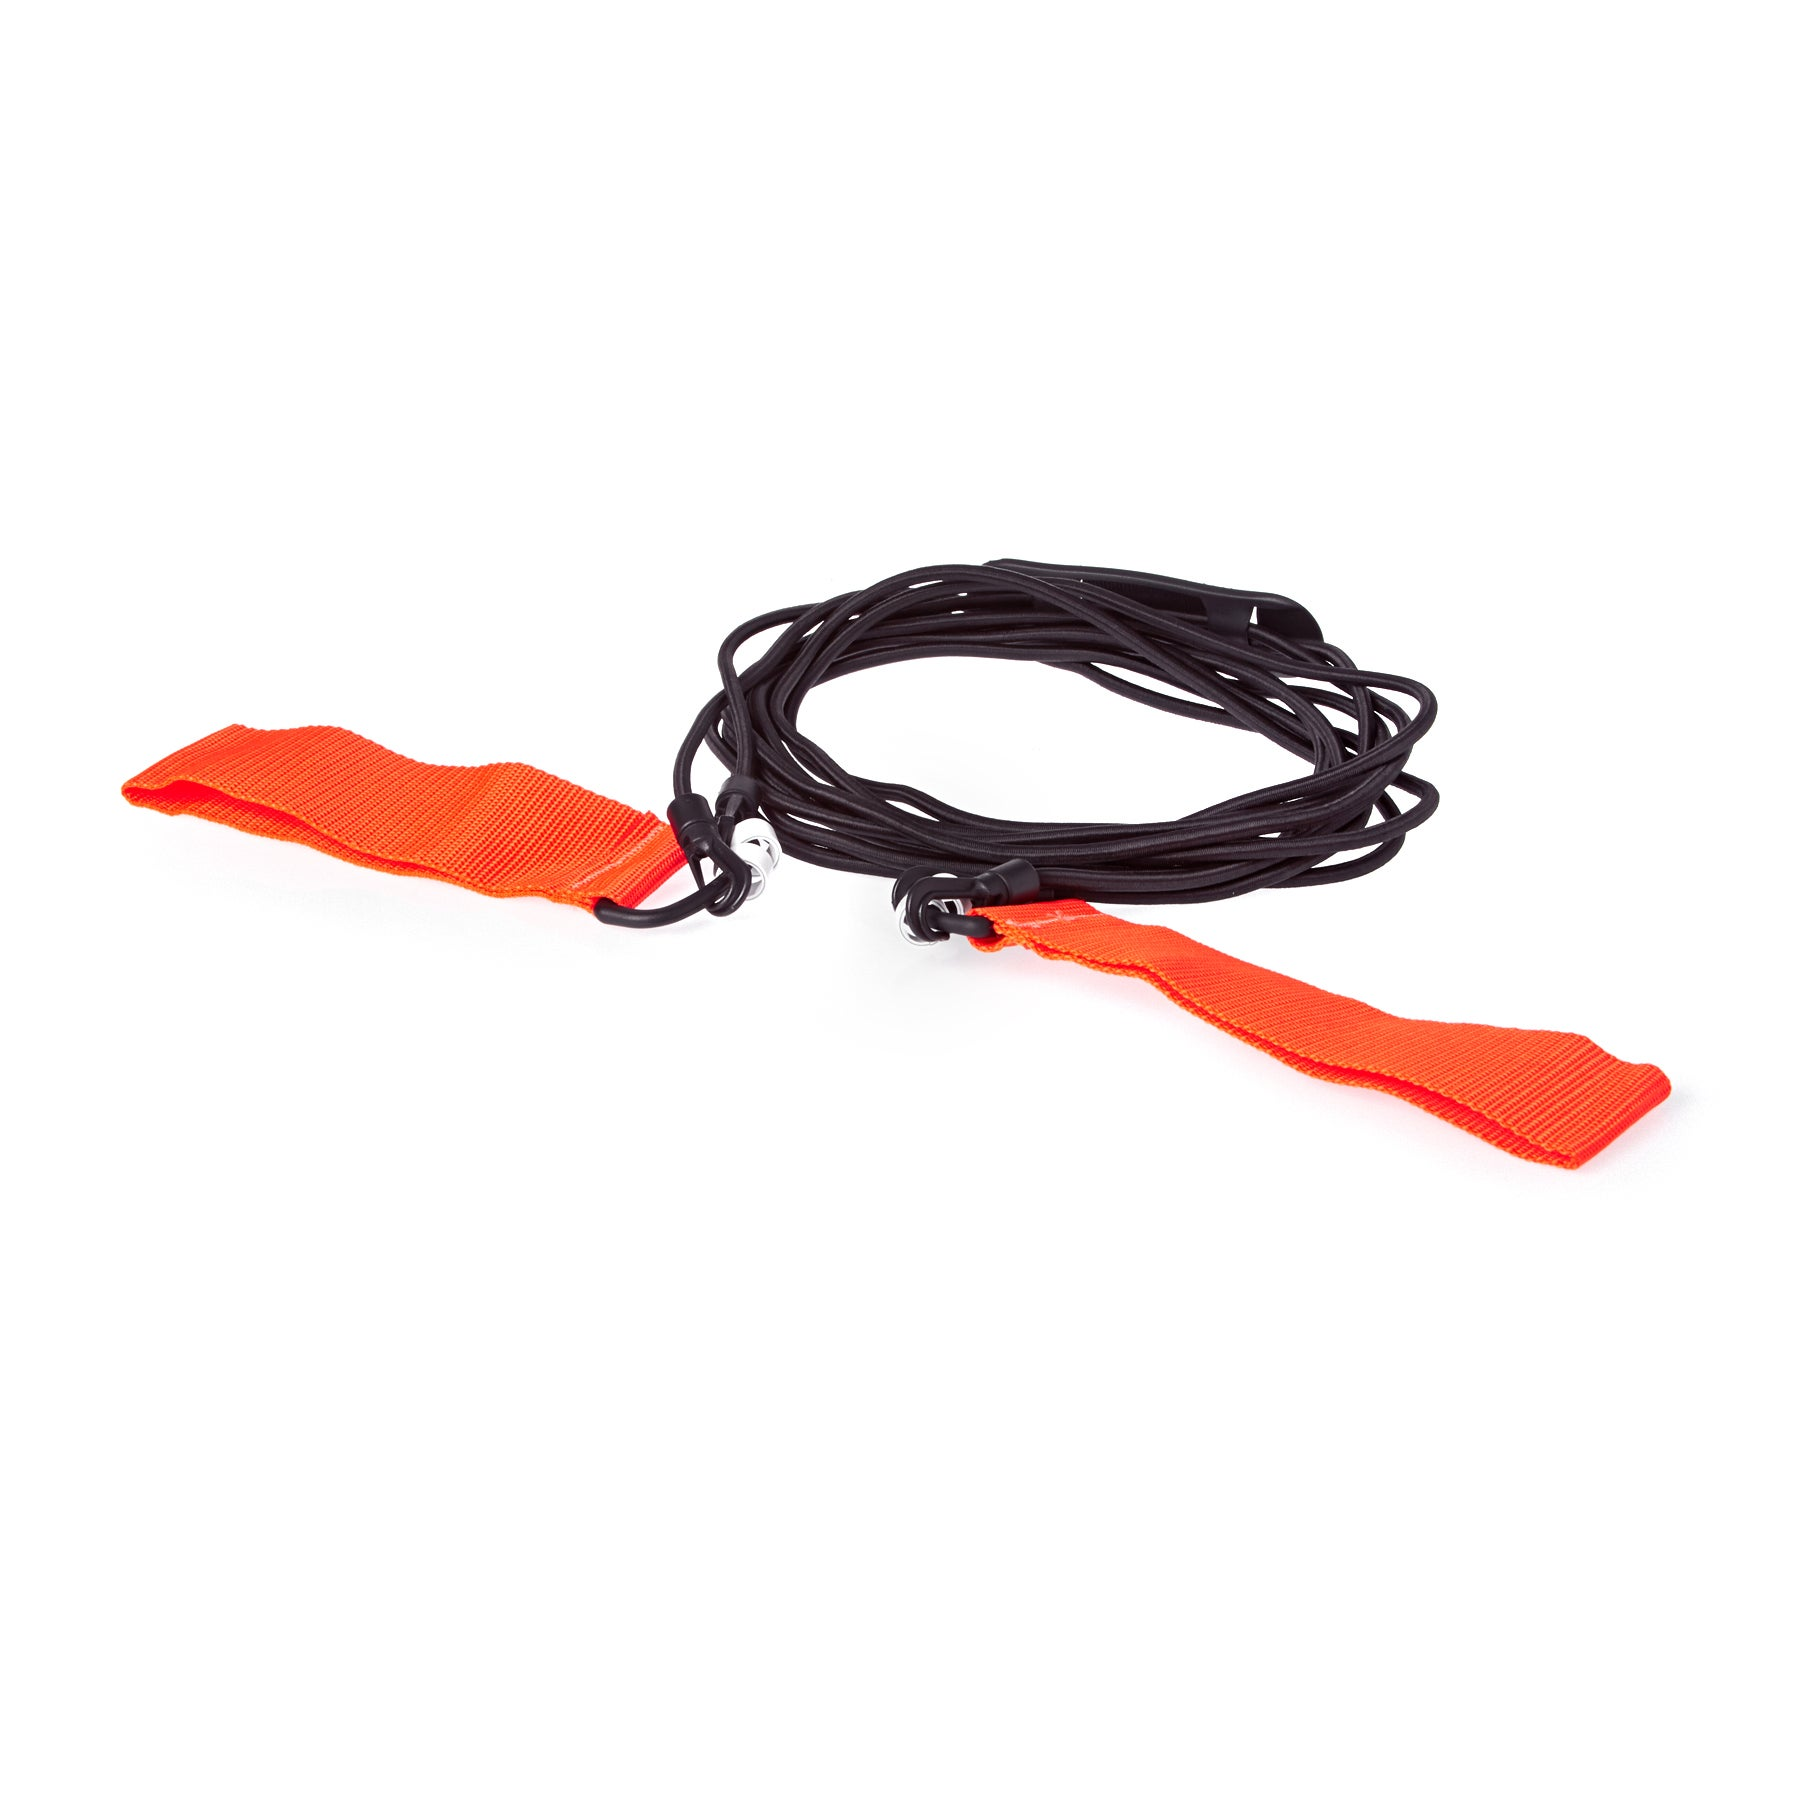 Northcore Bungee Cord Surf Training Surf Tool - Black